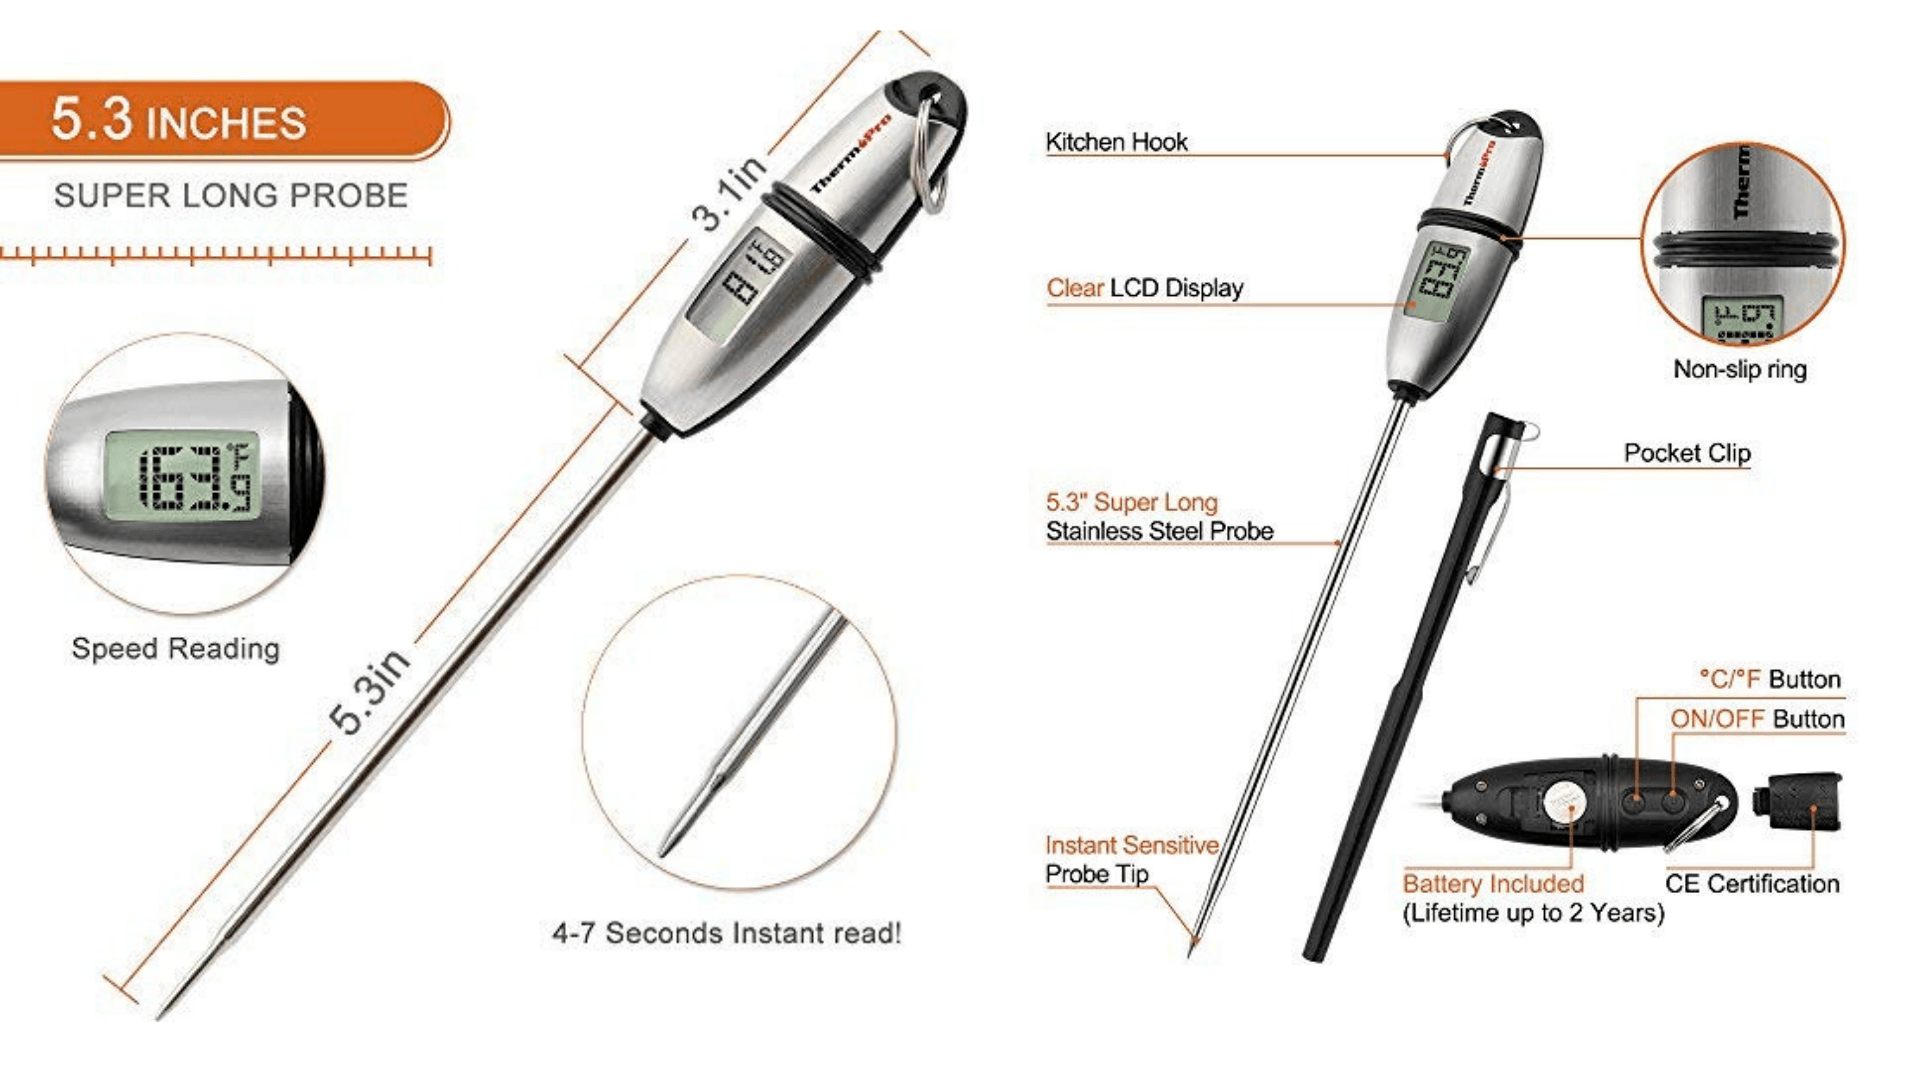 Diagram of ThermoPro TP-02S 5 Seconds Instant Read Meat Thermometer features